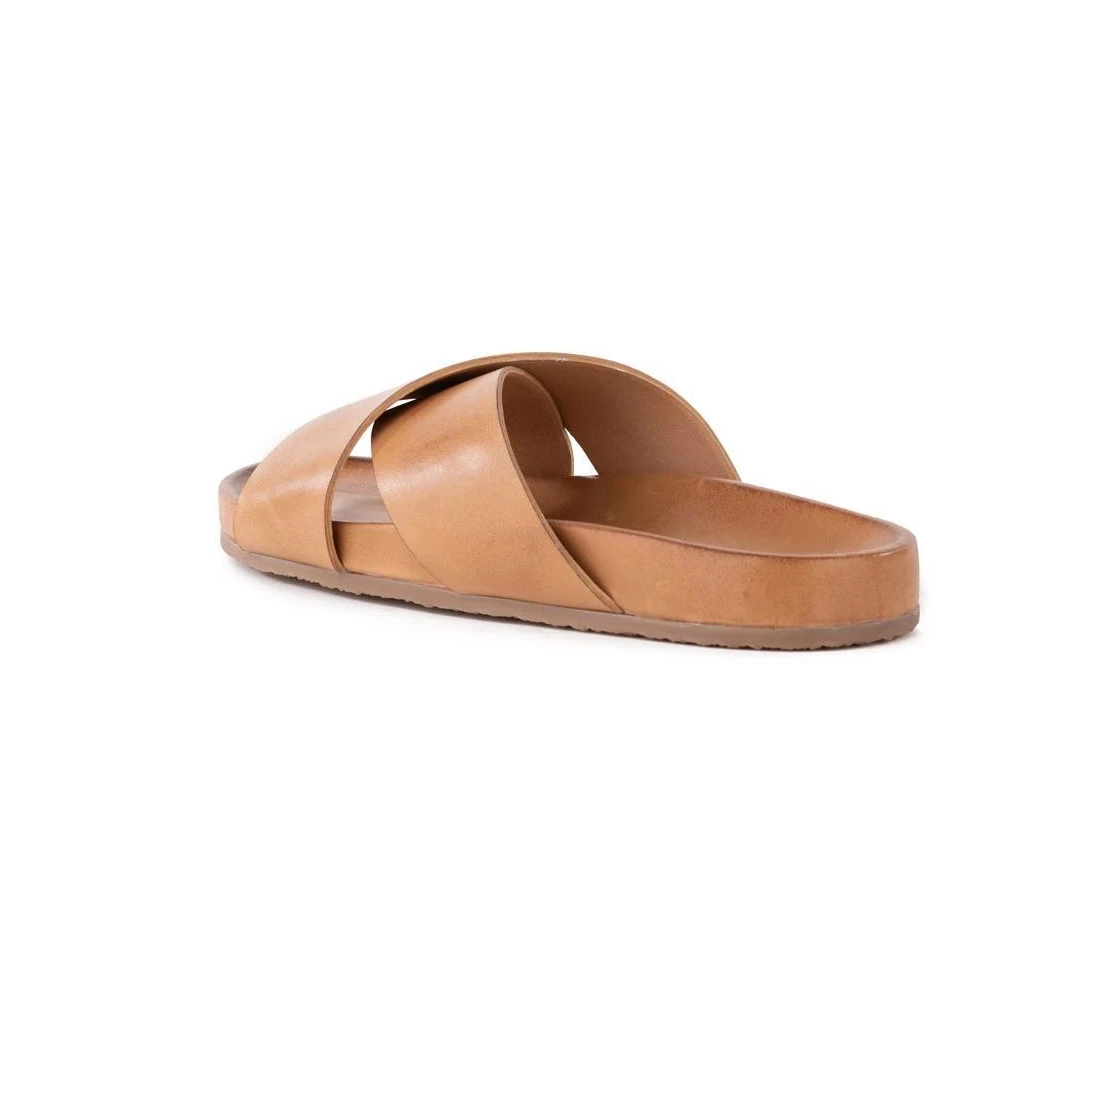 seychelles lighthearted slide in tan leather 84717